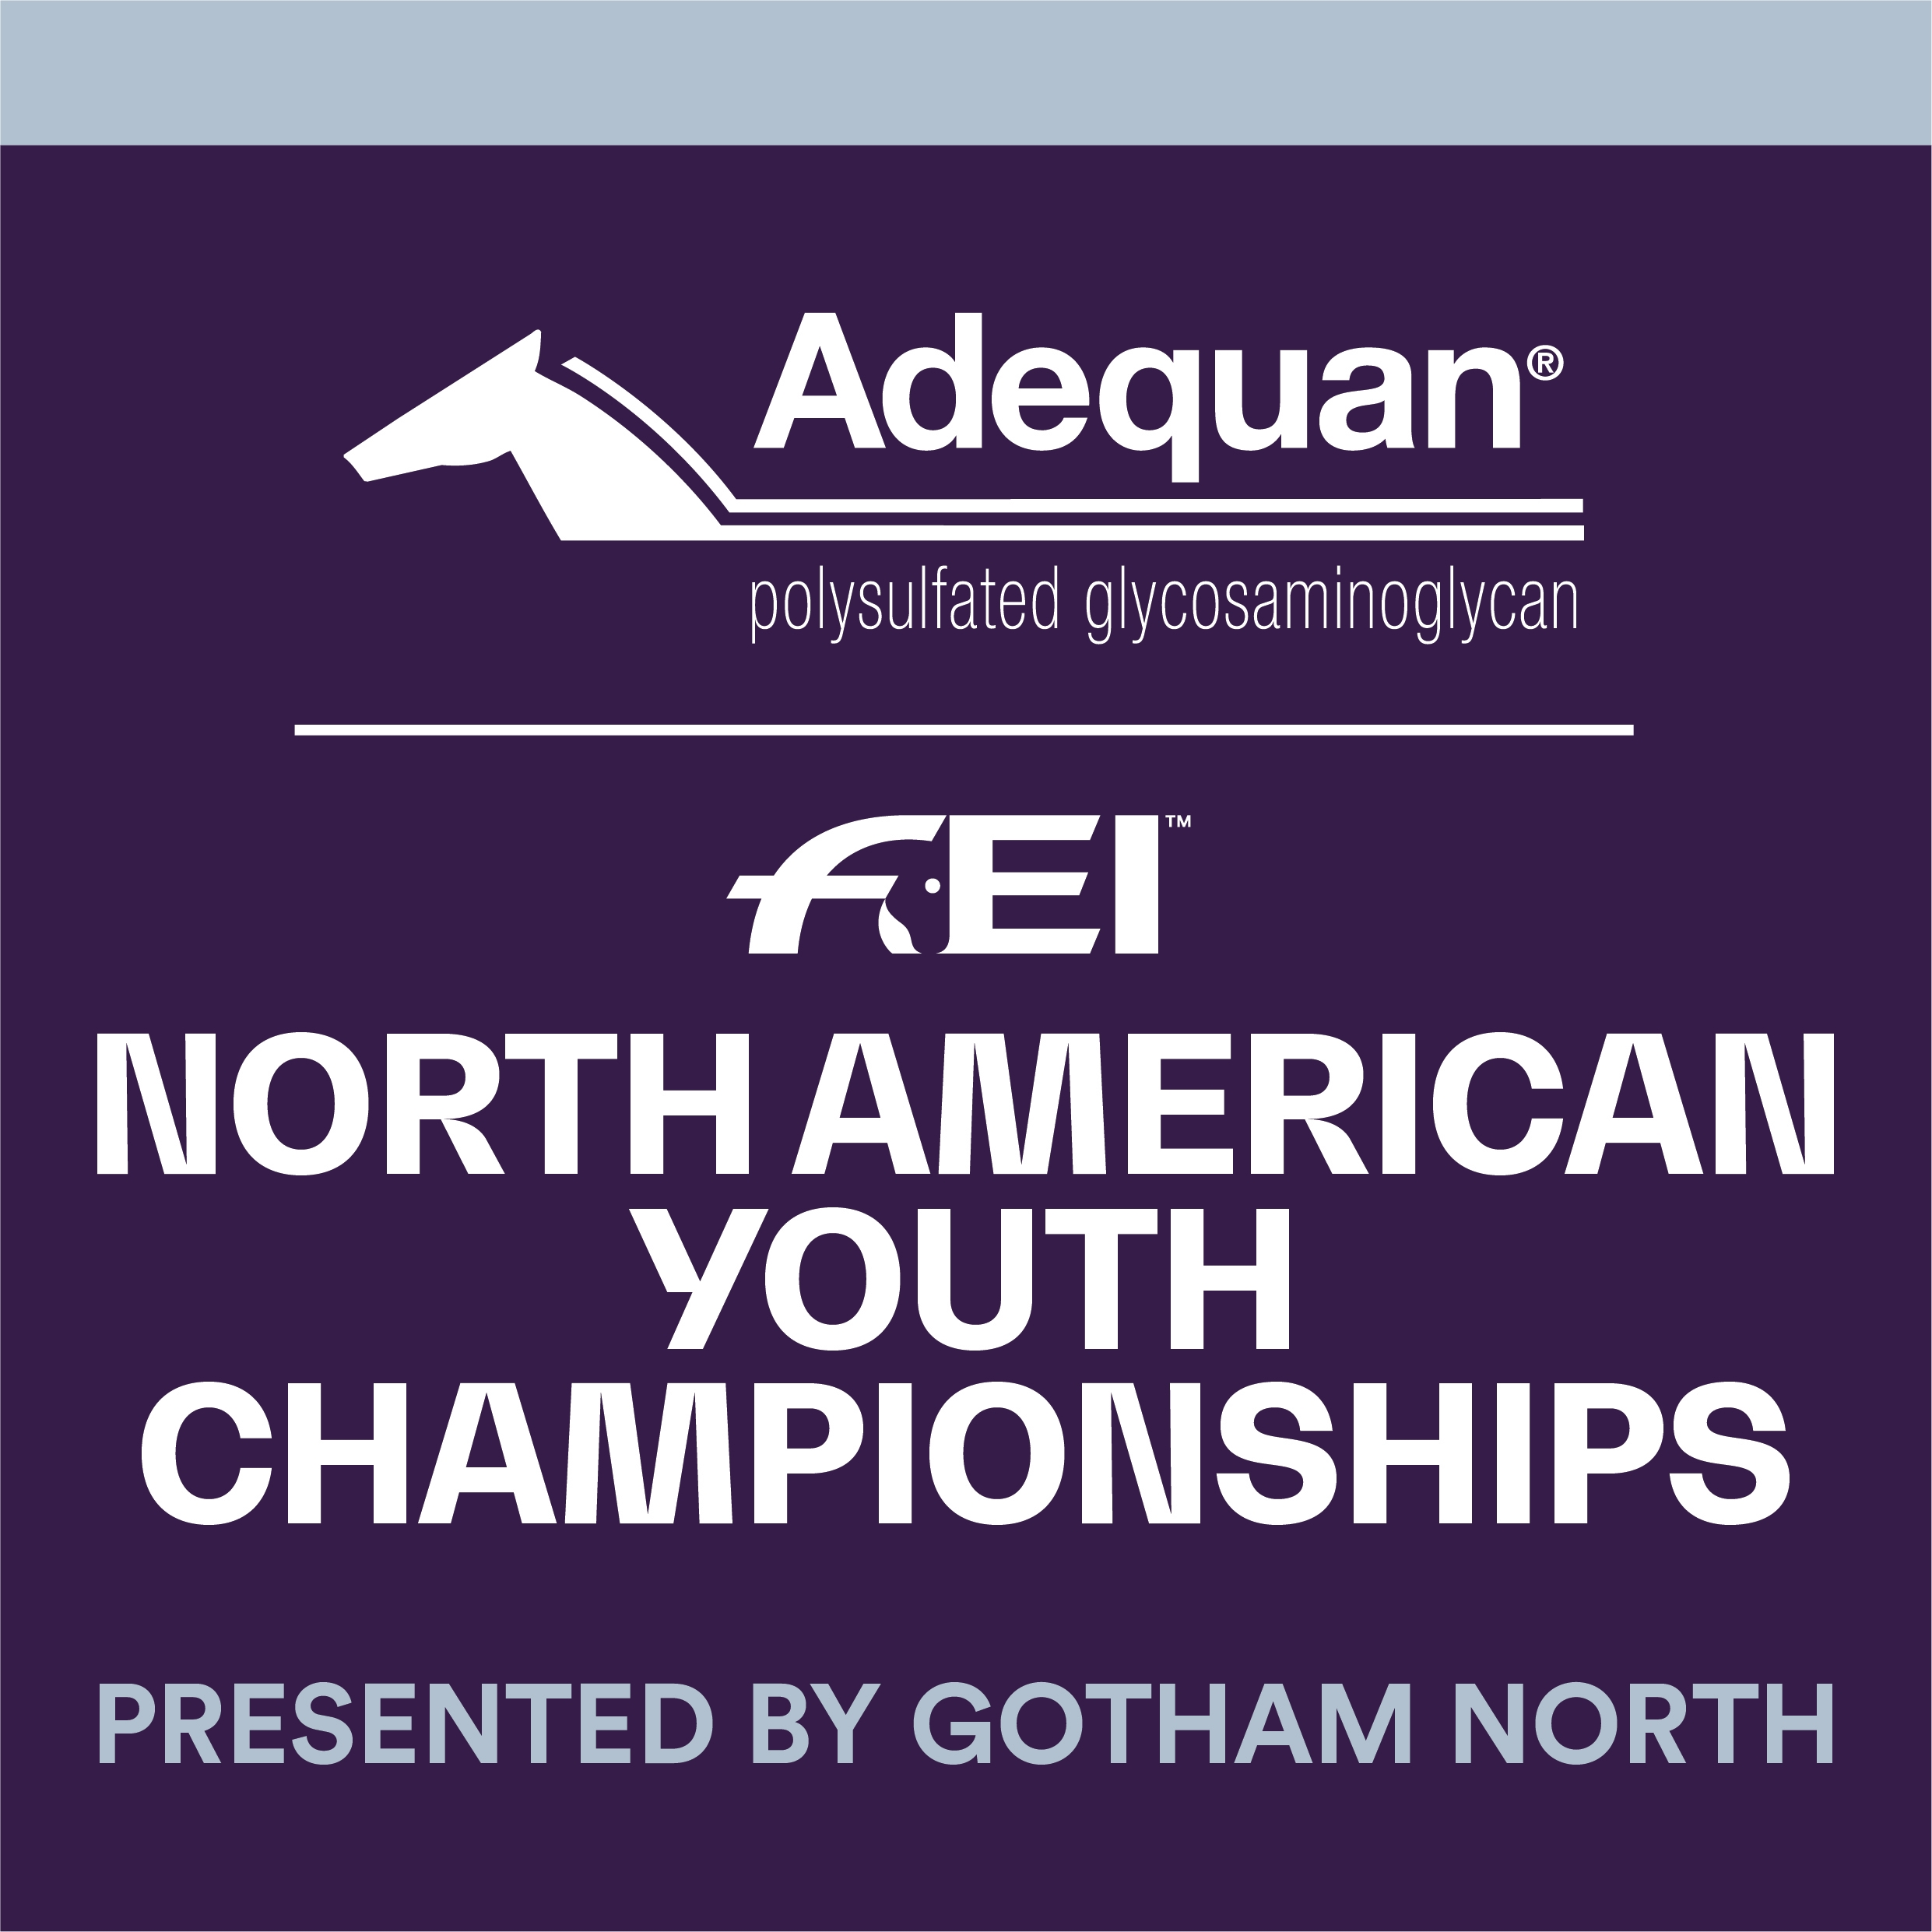 The 2018 Adequan®/FEI North American Youth Championships, presented by Gotham North, are on August 1 through 5.